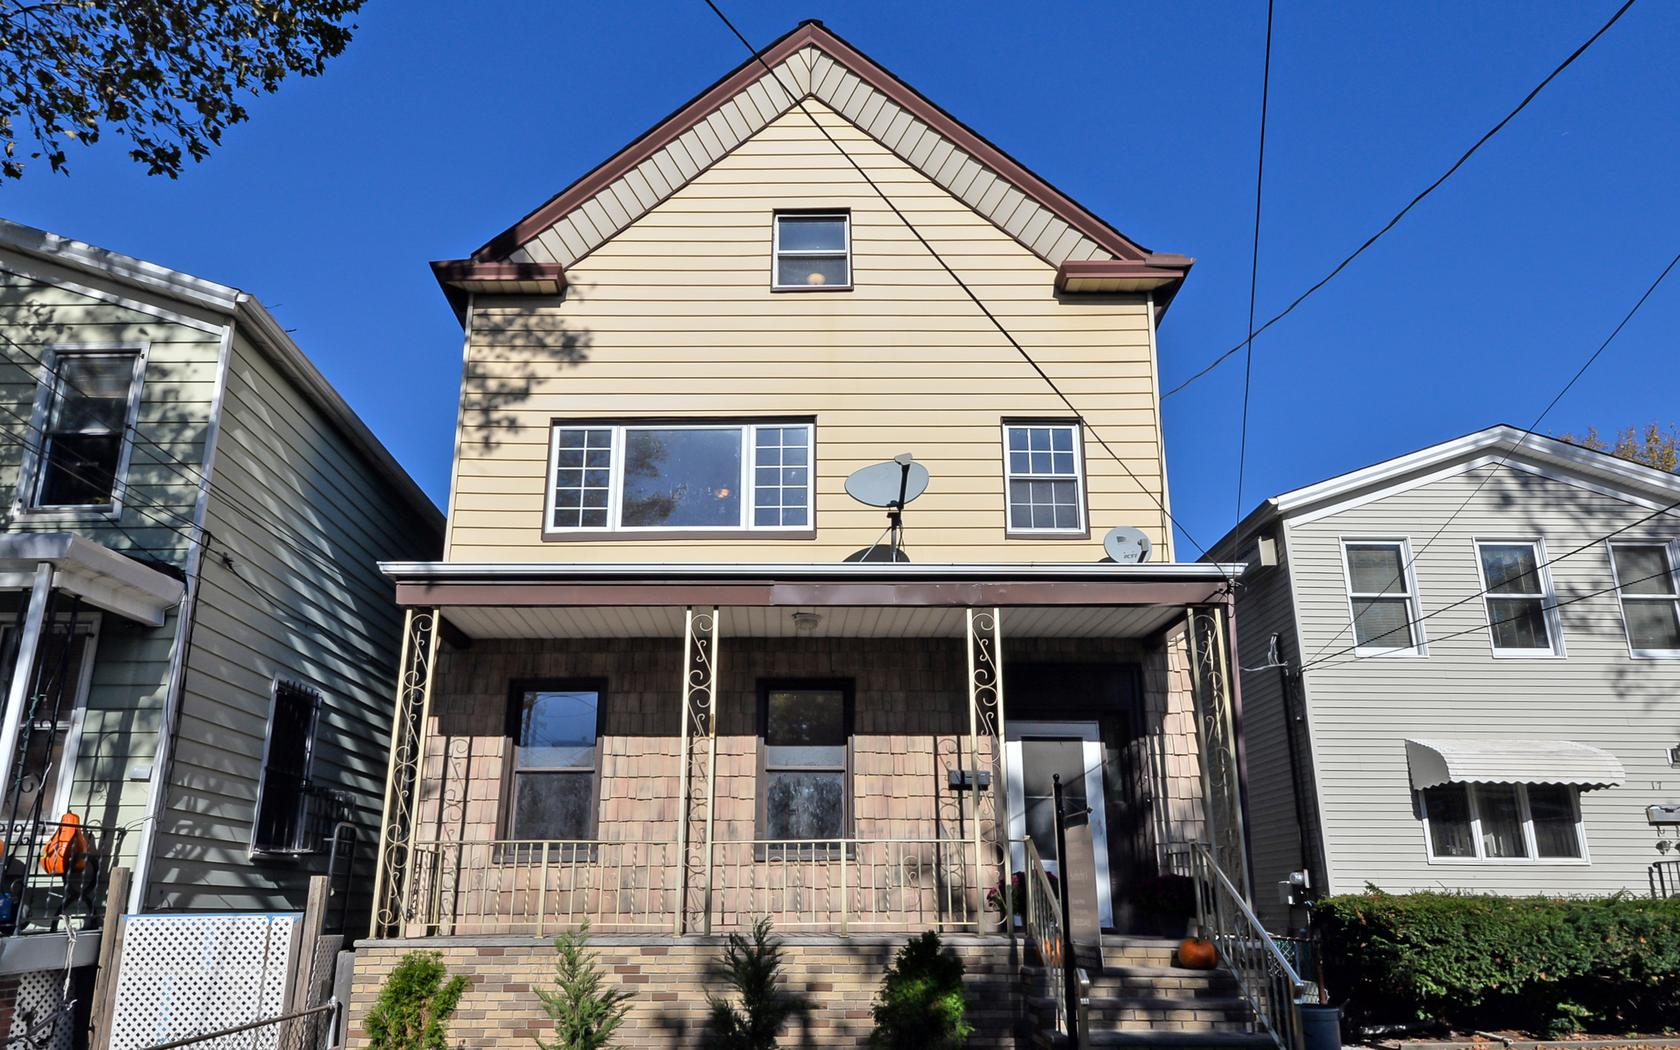 Casa Multifamiliar por un Venta en Spacious Two Family 19 West 9th Street Bayonne, Nueva Jersey 07002 Estados Unidos